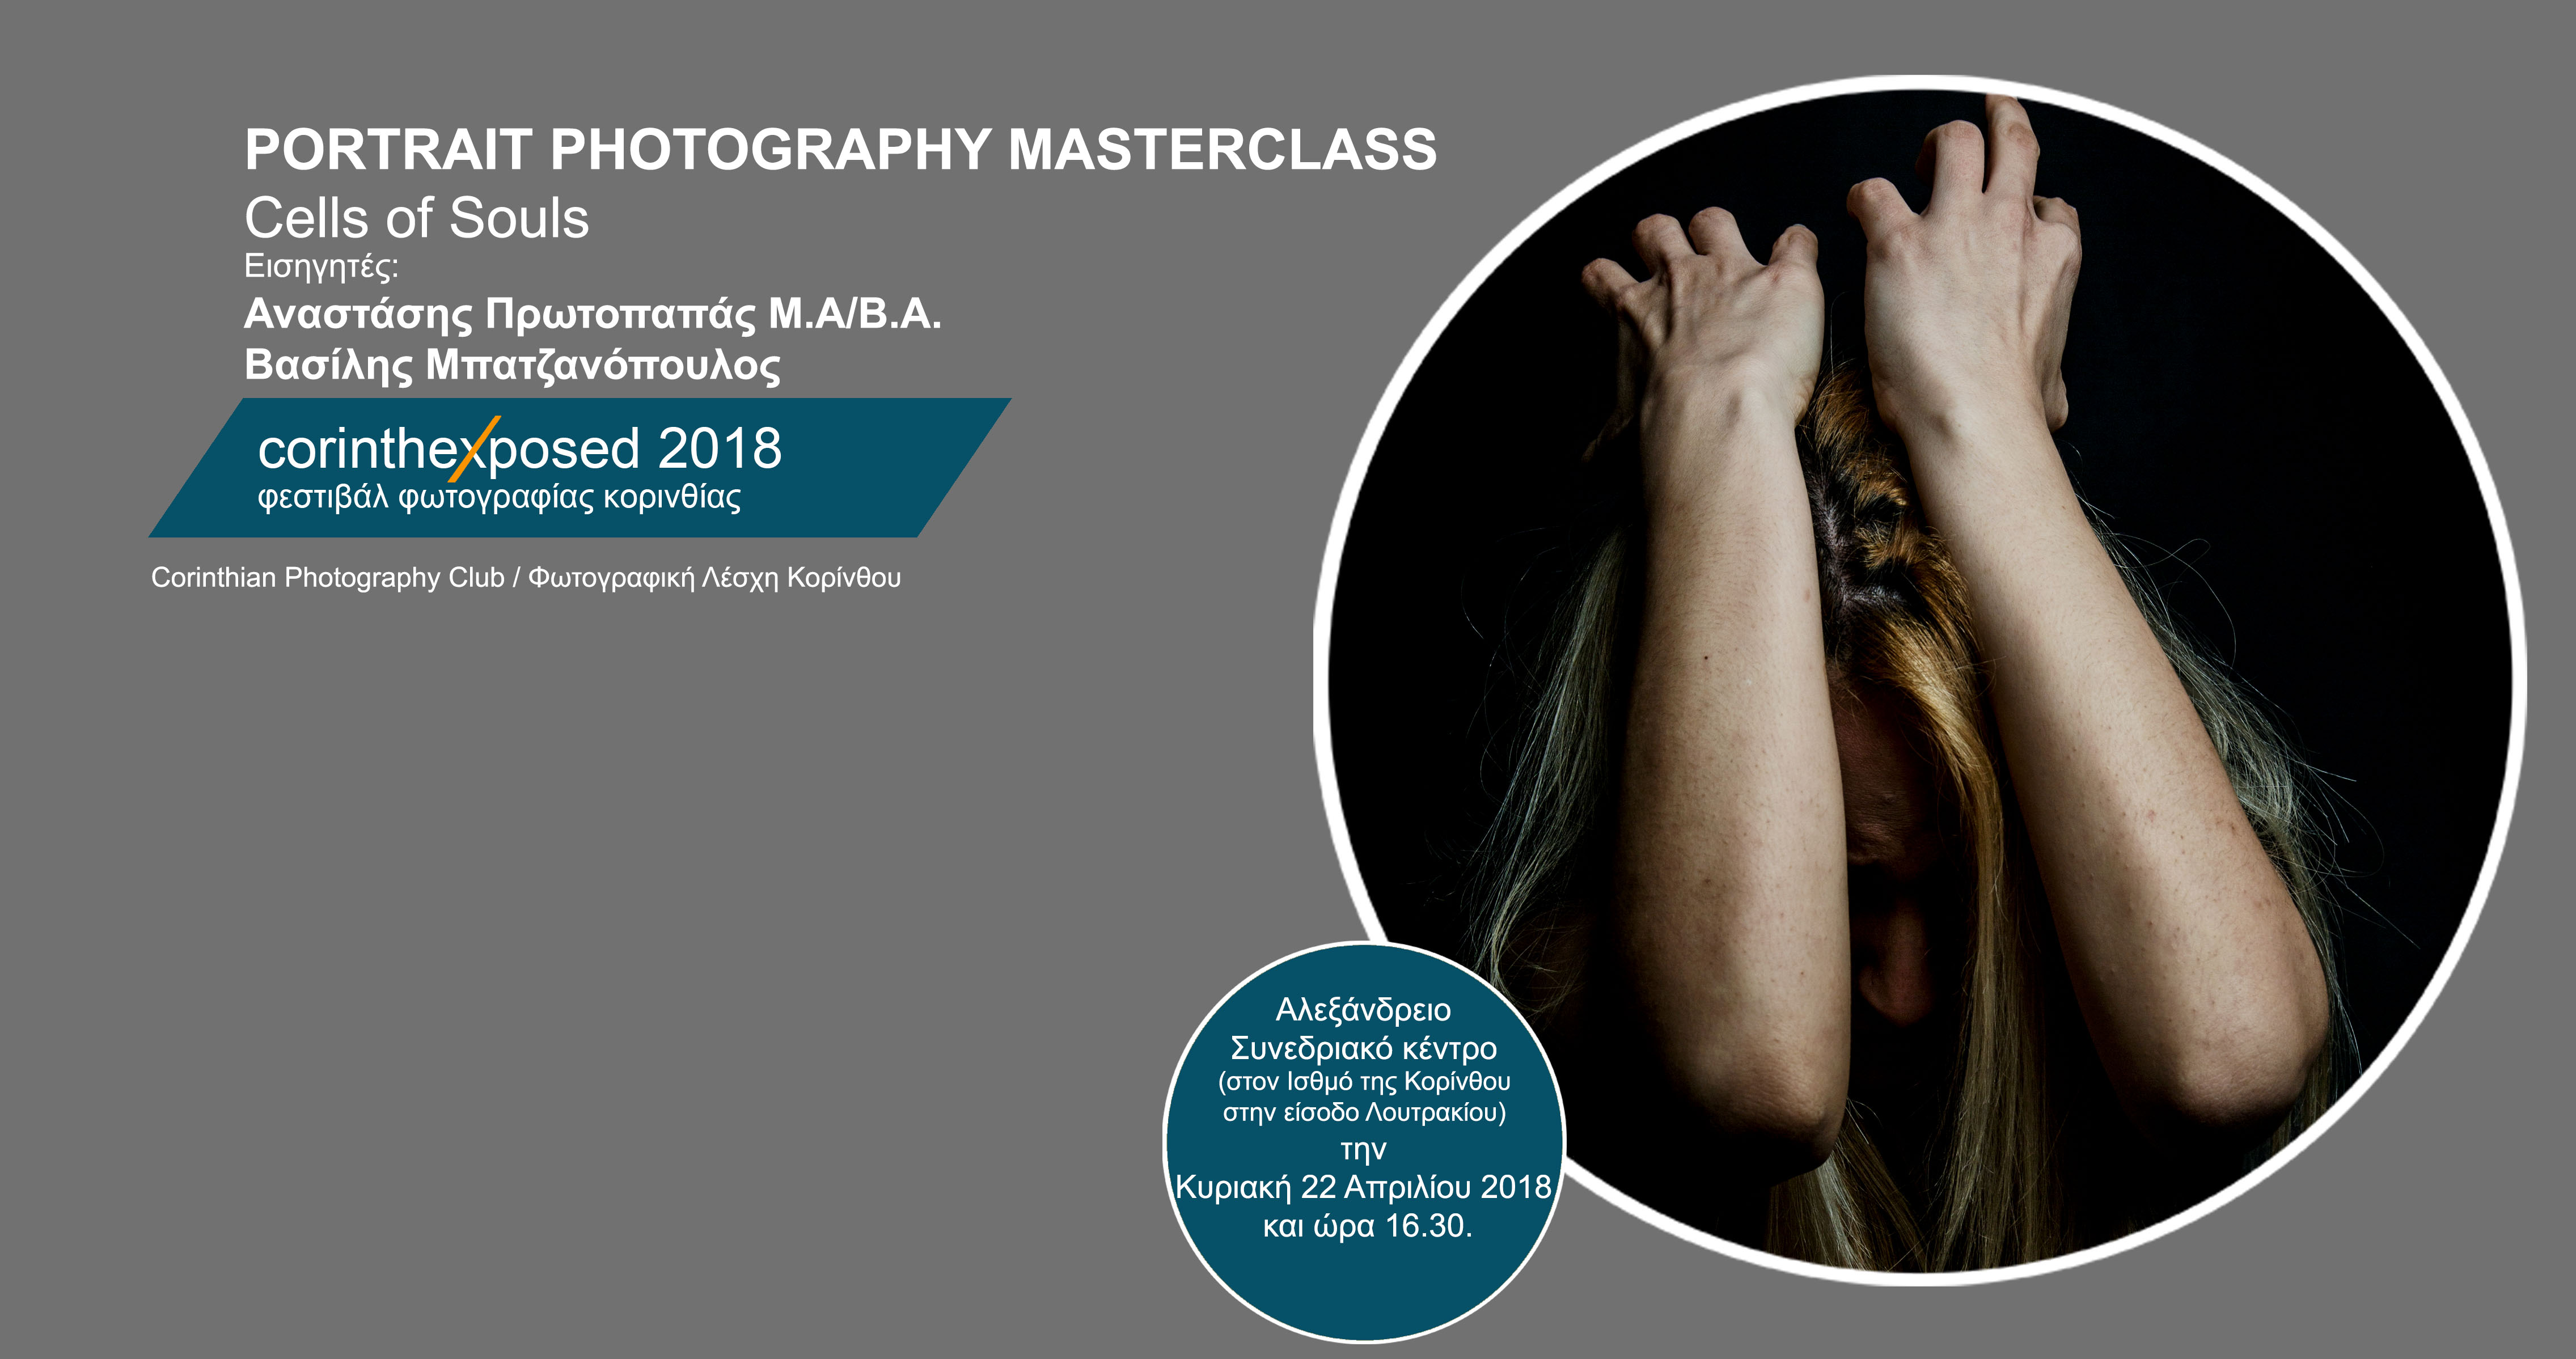 Portrait photography masterclass